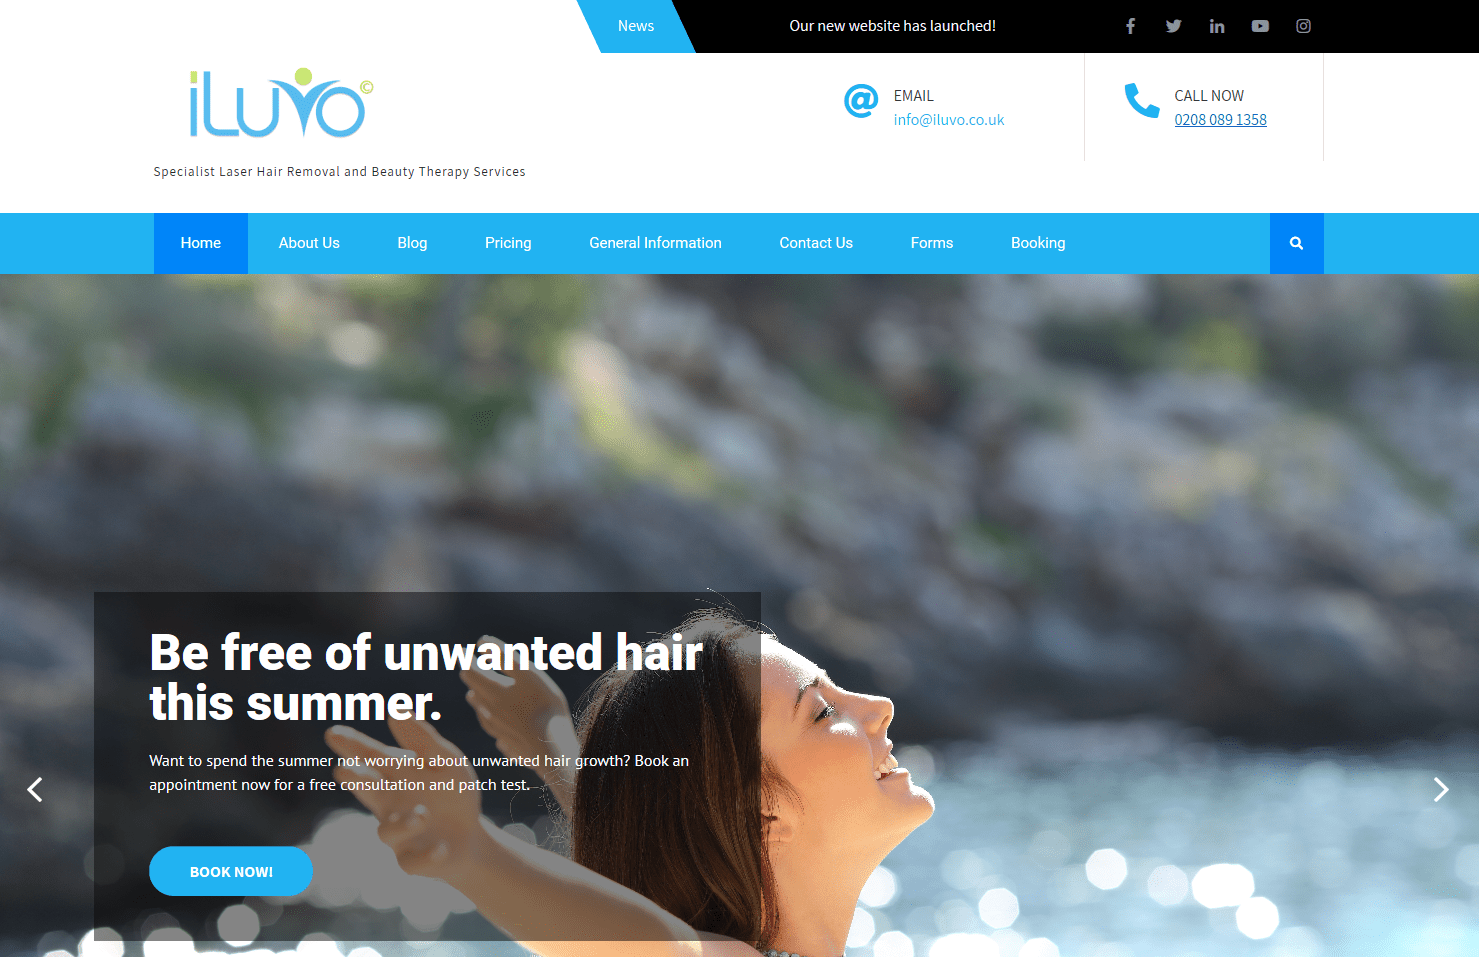 A look at our new iLuvo website landing page